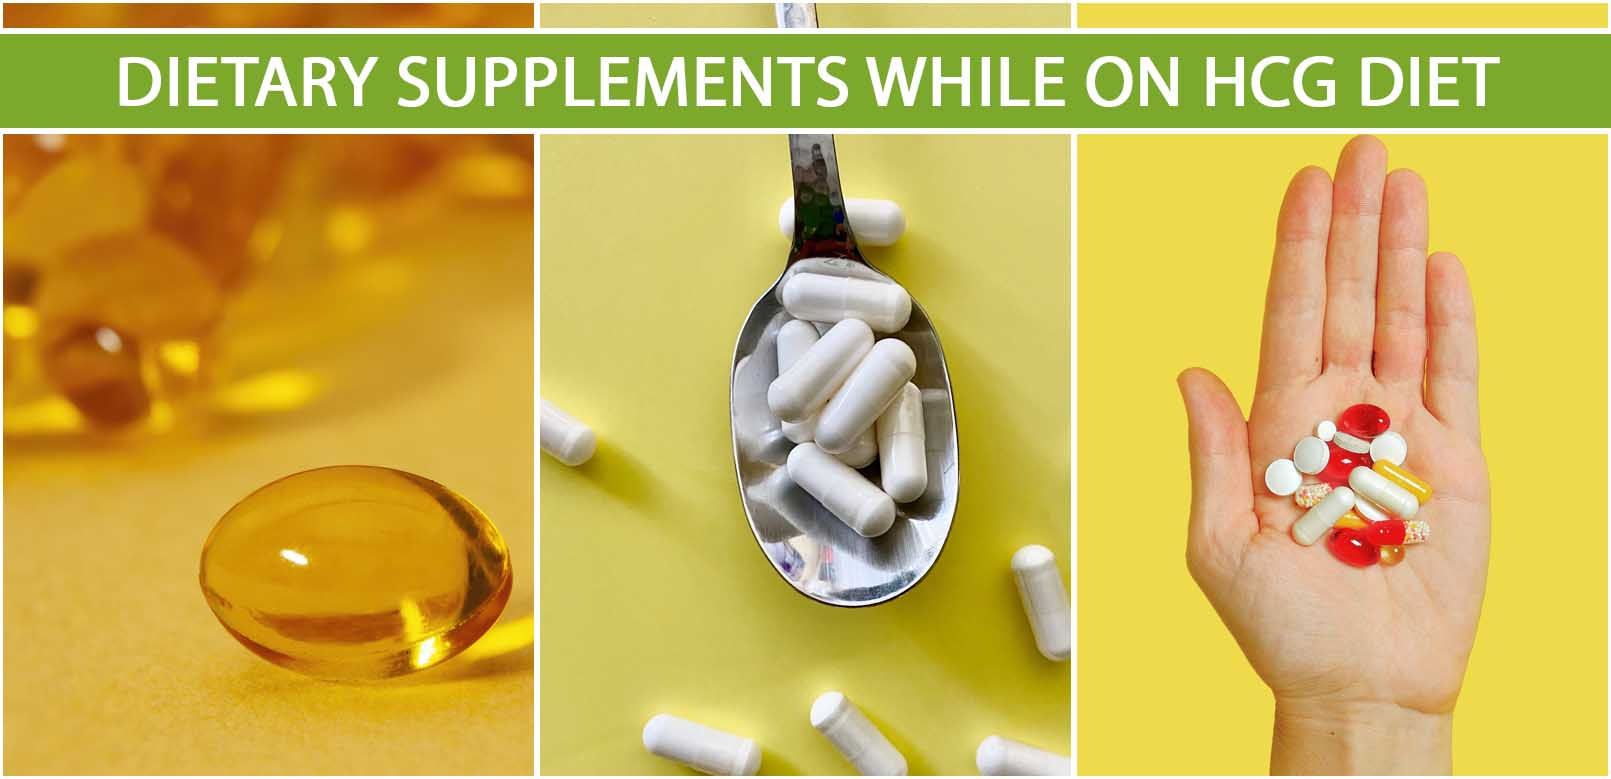 DIETARY SUPPLEMENTS WHILE ON HCG DIET